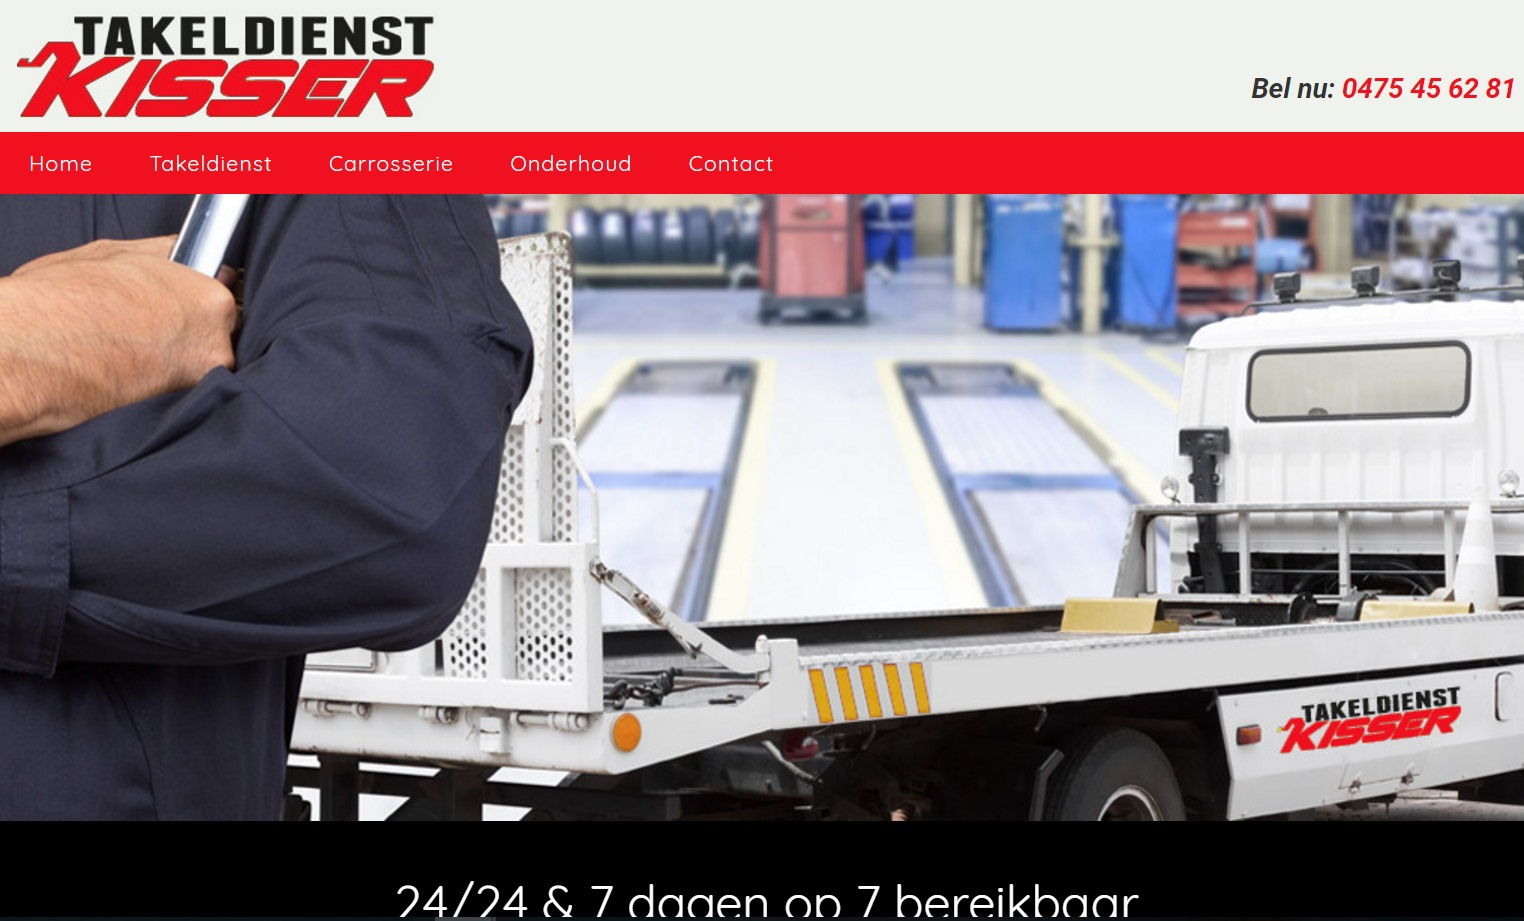 Takeldienst kisser | Webdesign Geel